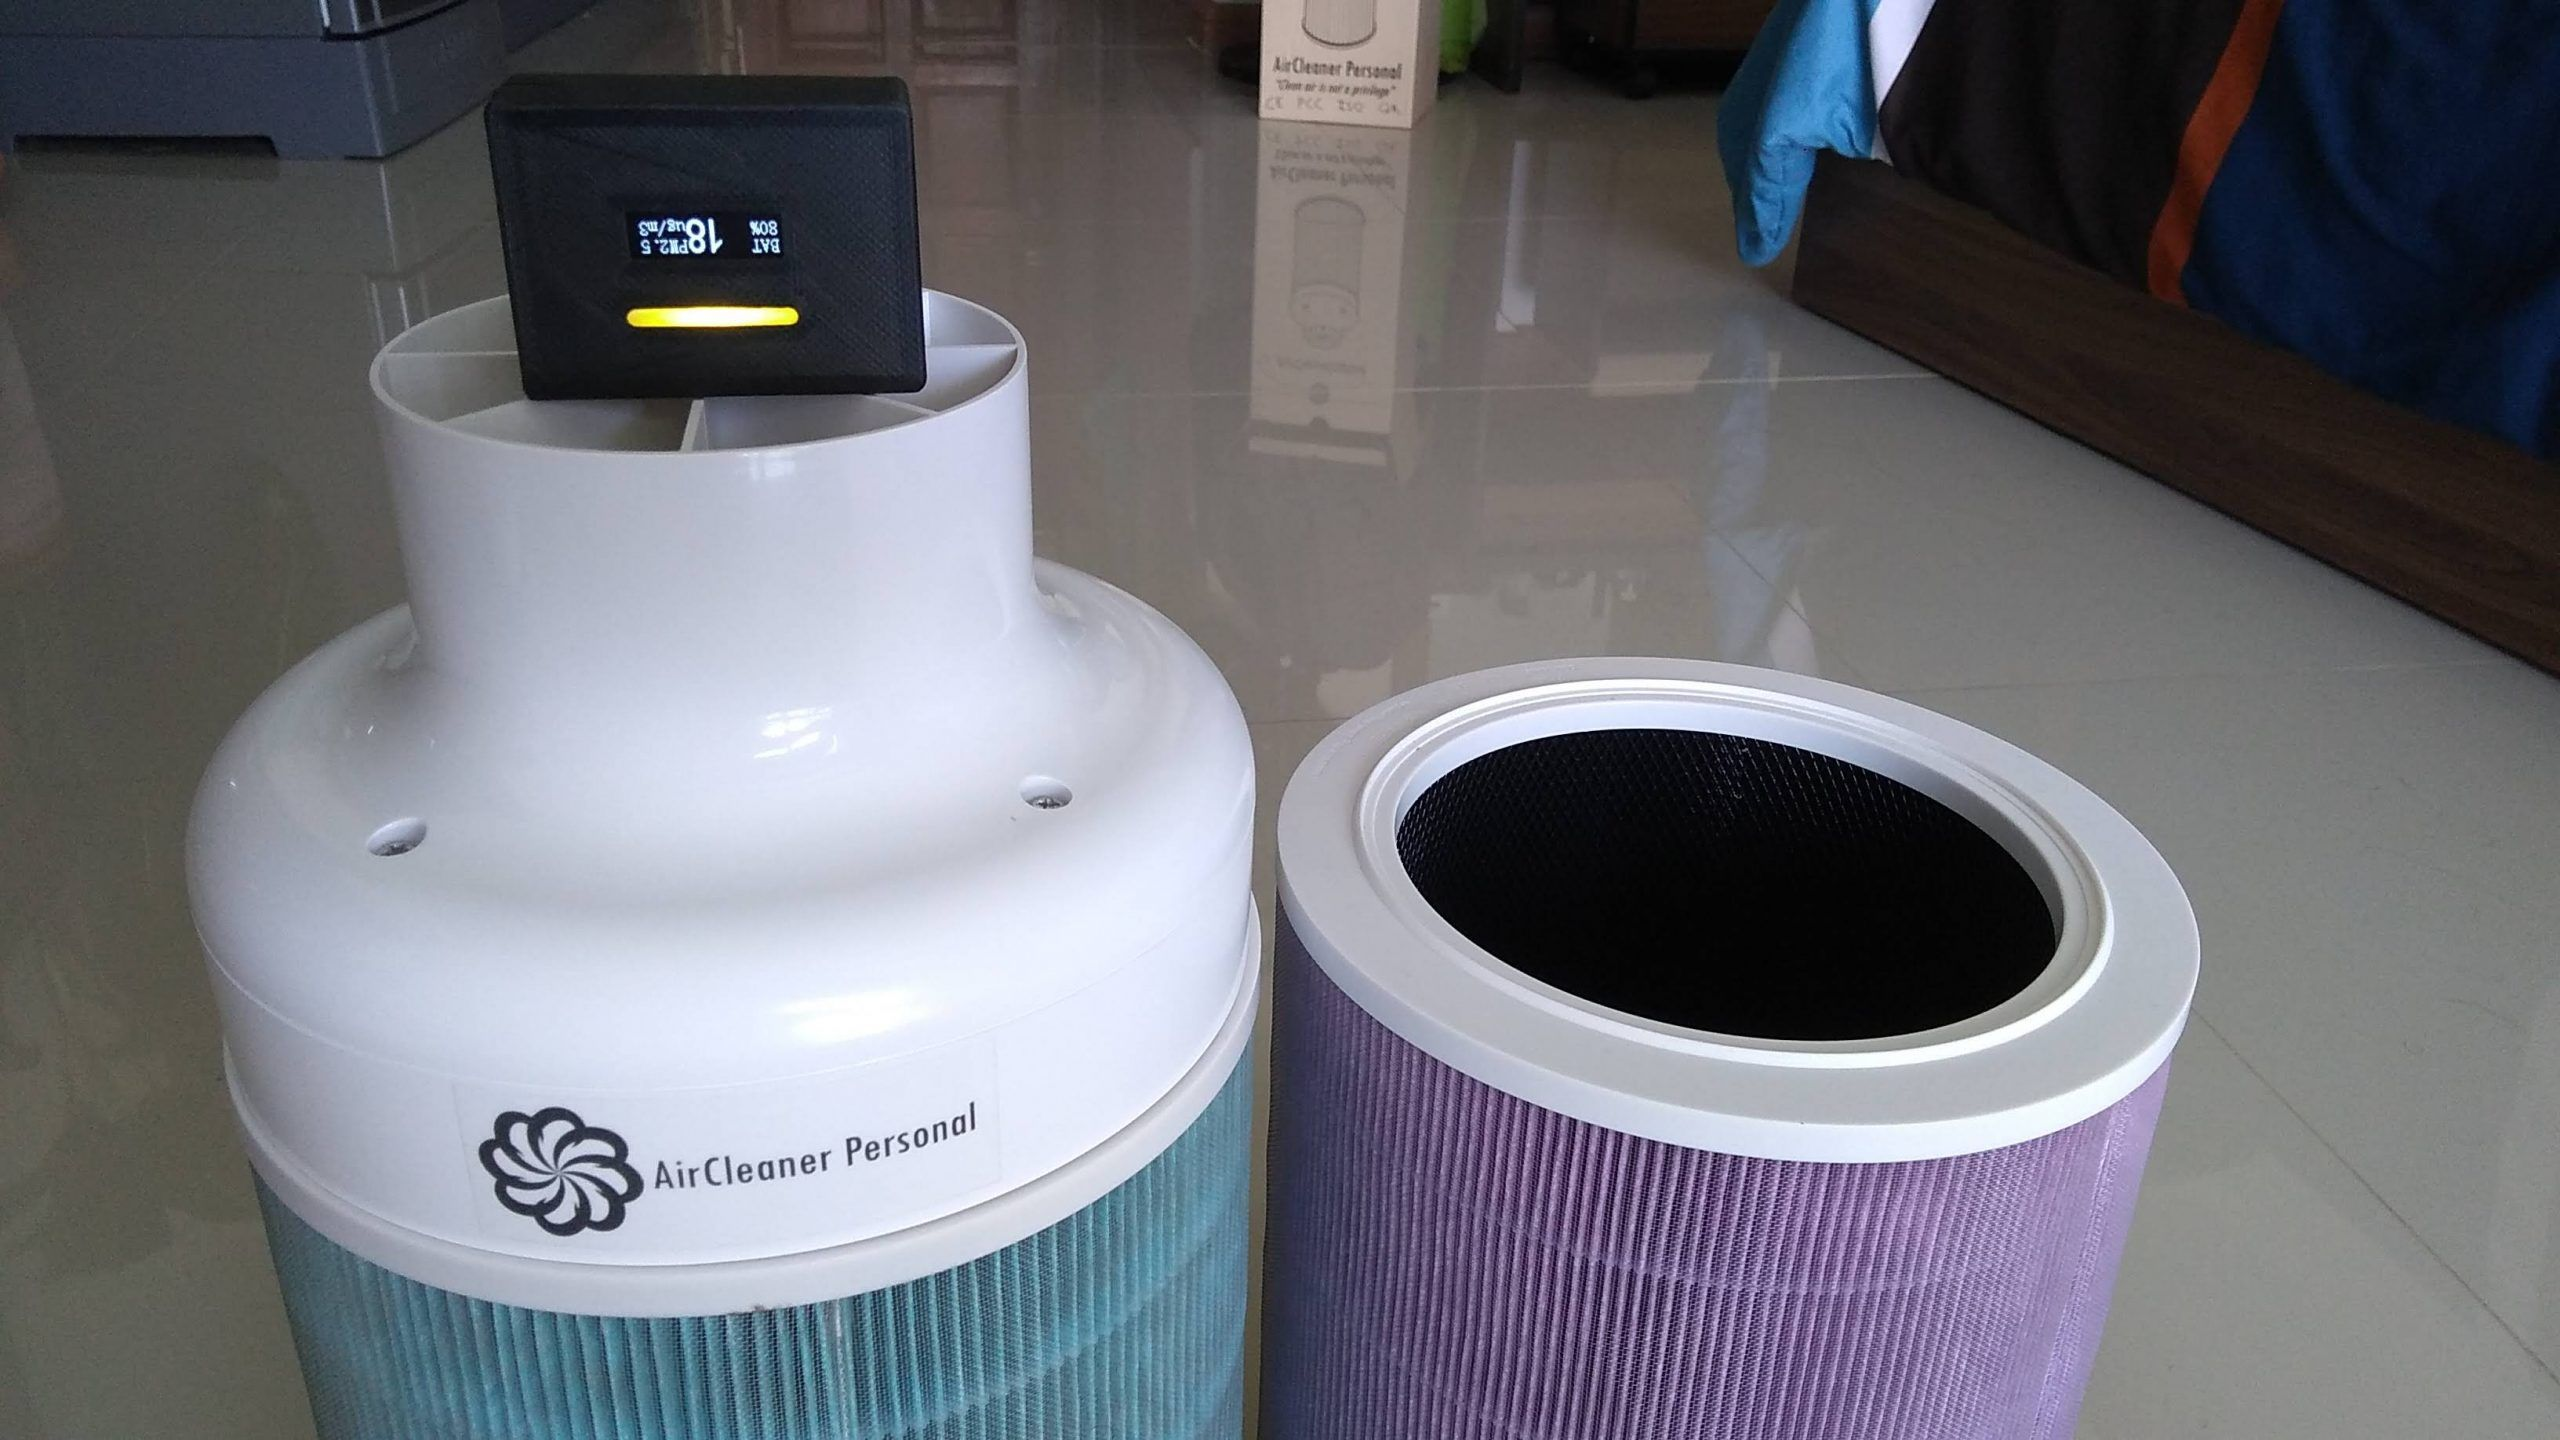 Read more about the article ตัวกรอง HEPA Filter คืออะไร? และต้องเปลี่ยนเมื่อไหร่?